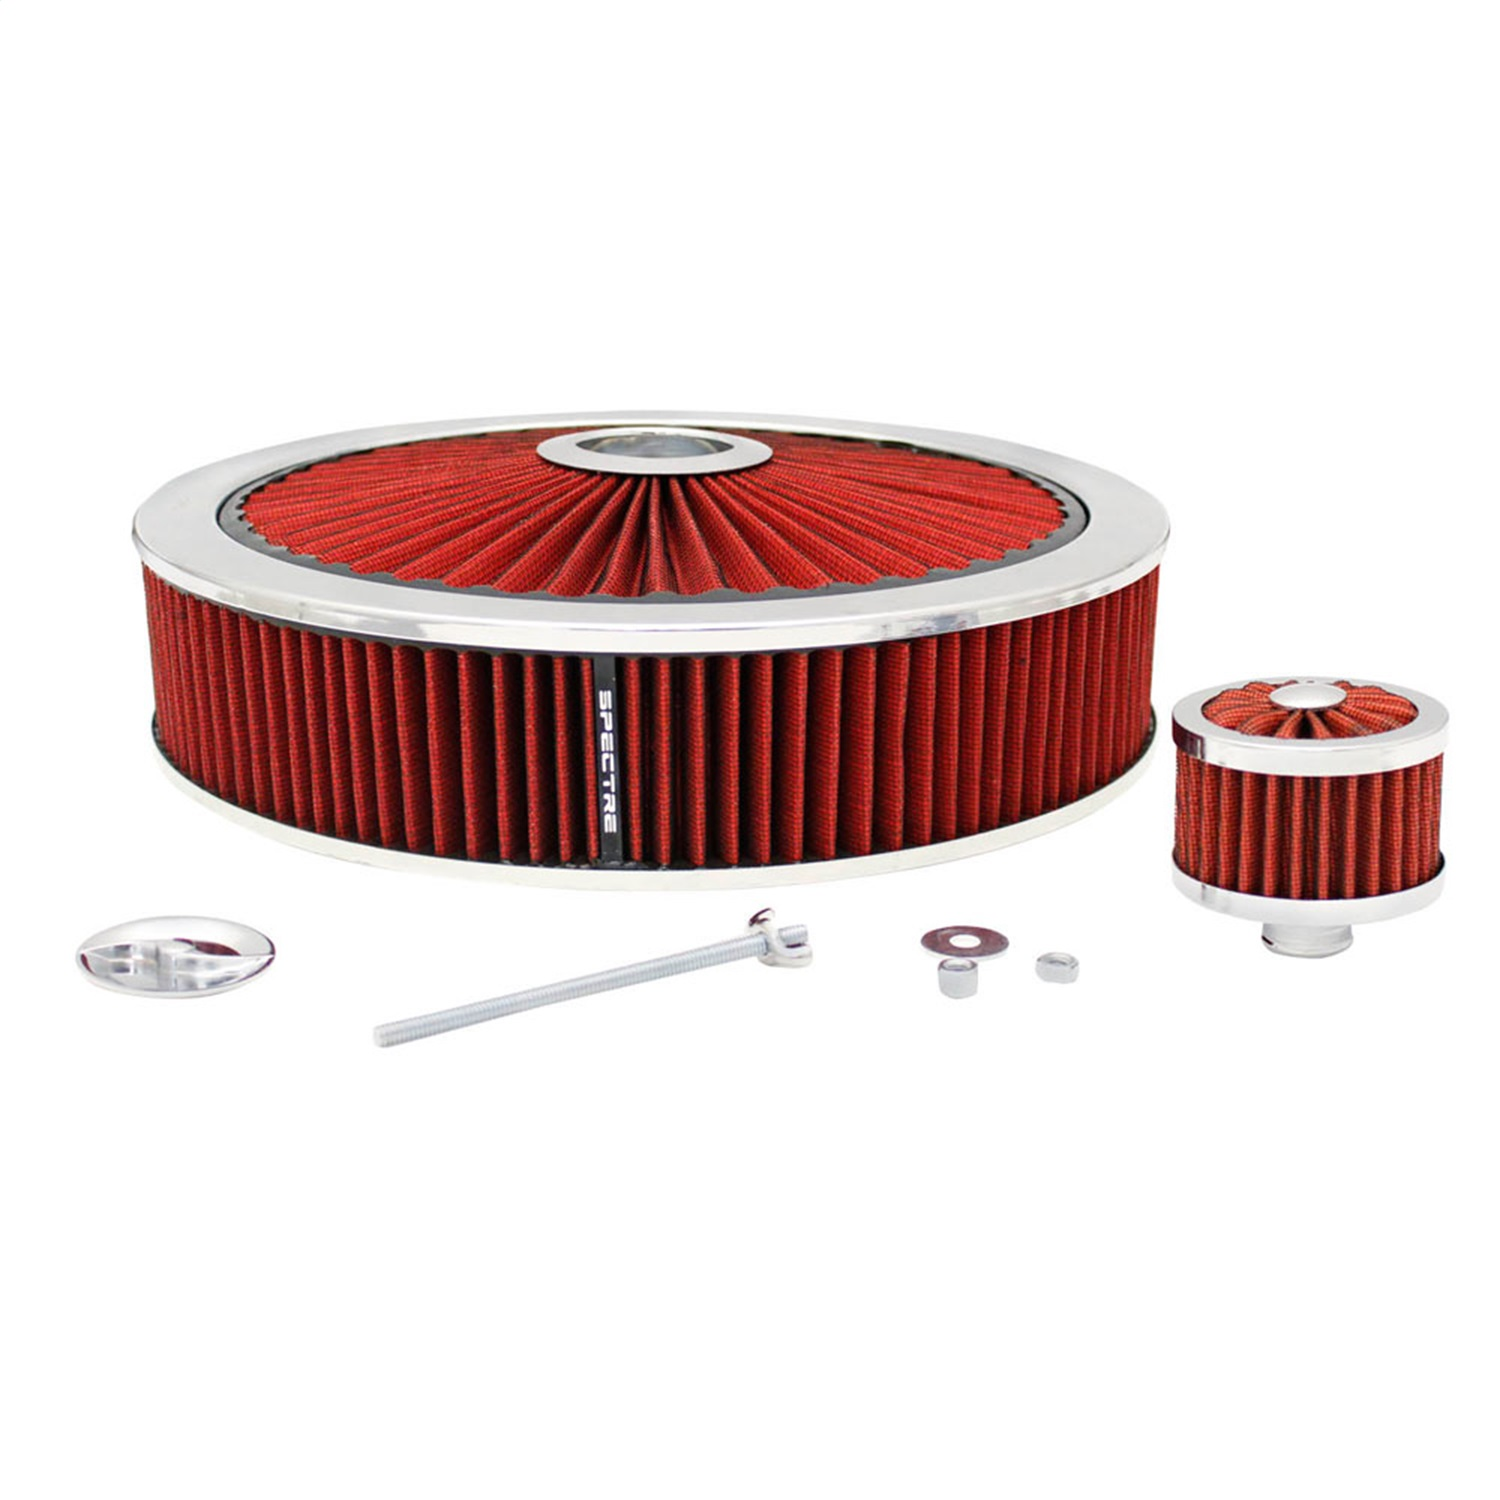 Air Filter Assembly : Spectre performance extraflow air filter assembly